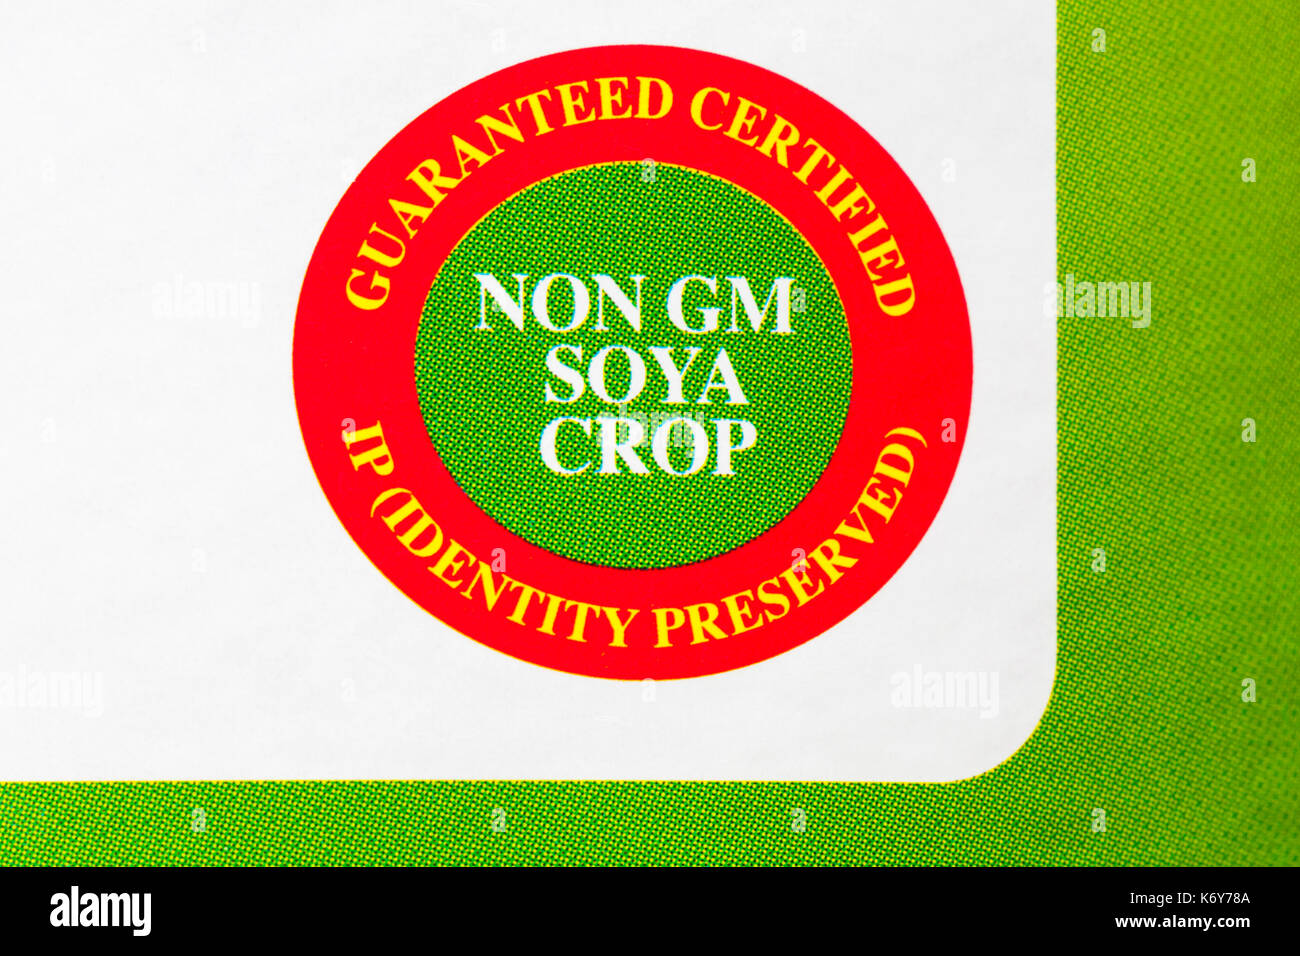 Non Gm Soya Crop Guaranteed Certified Ip Identity Preserved Symbol